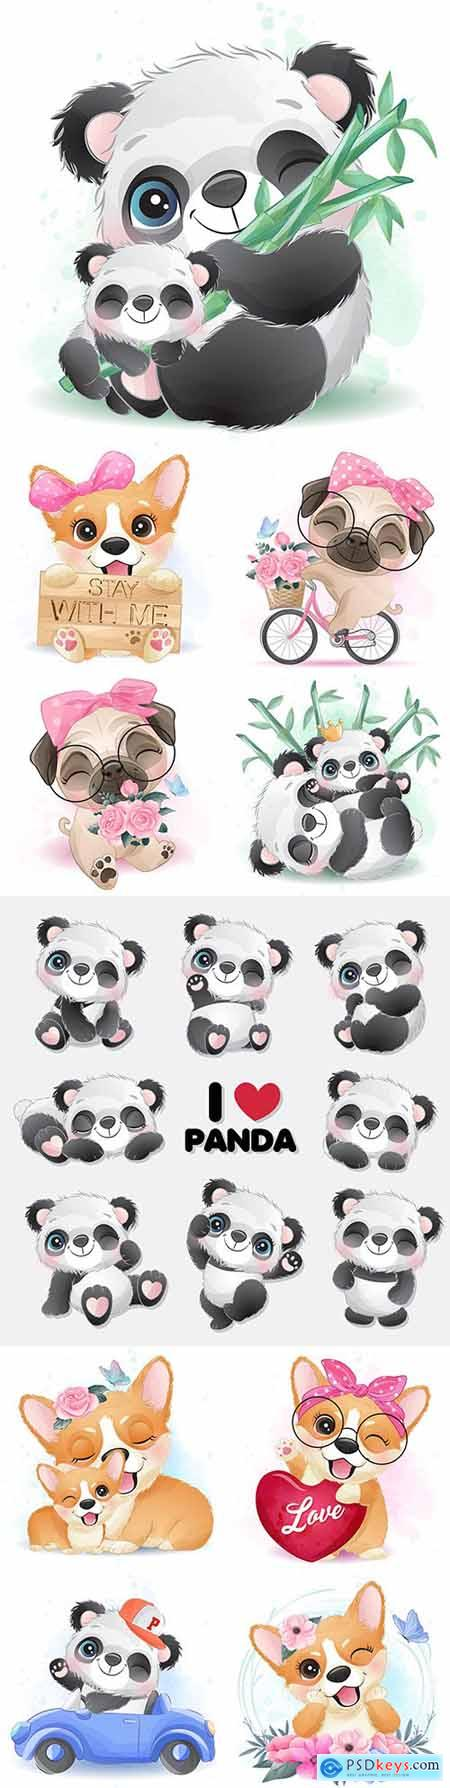 Cute panda, corgi and other animals with flowers